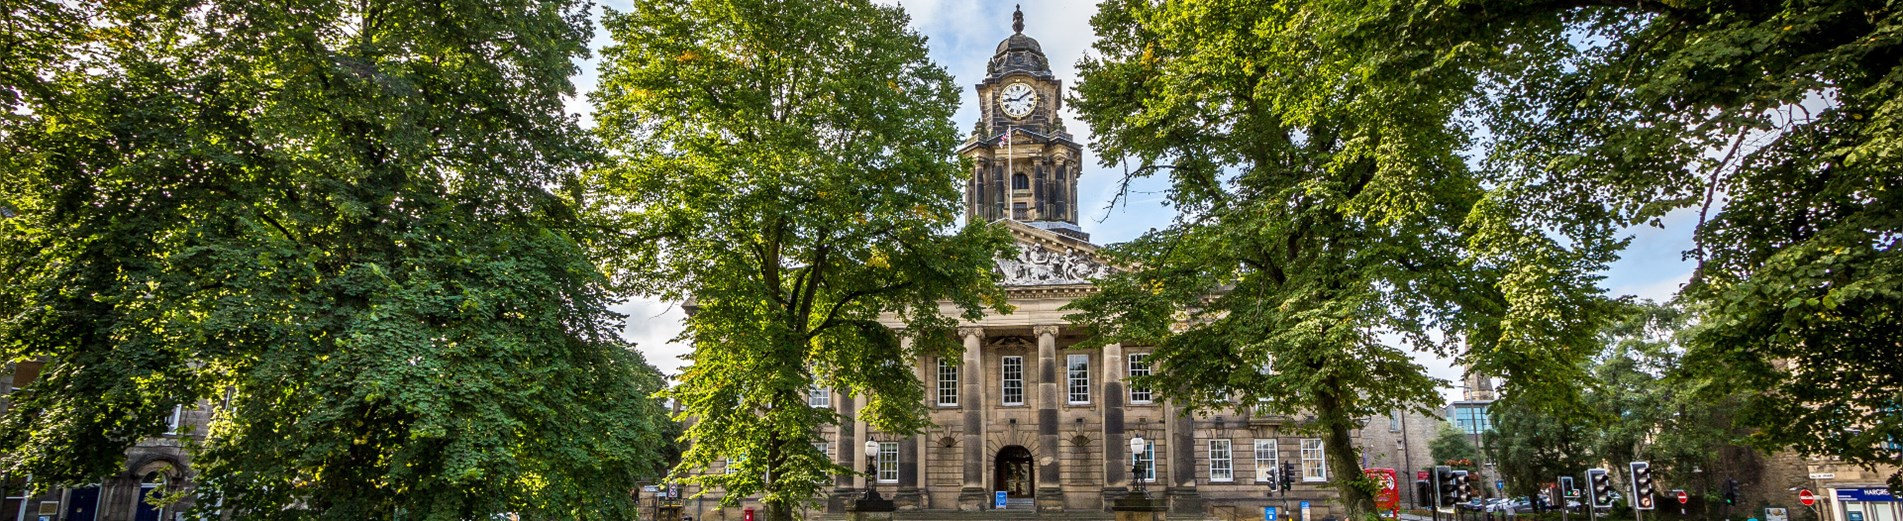 Lancaster Town Hall - widescreen